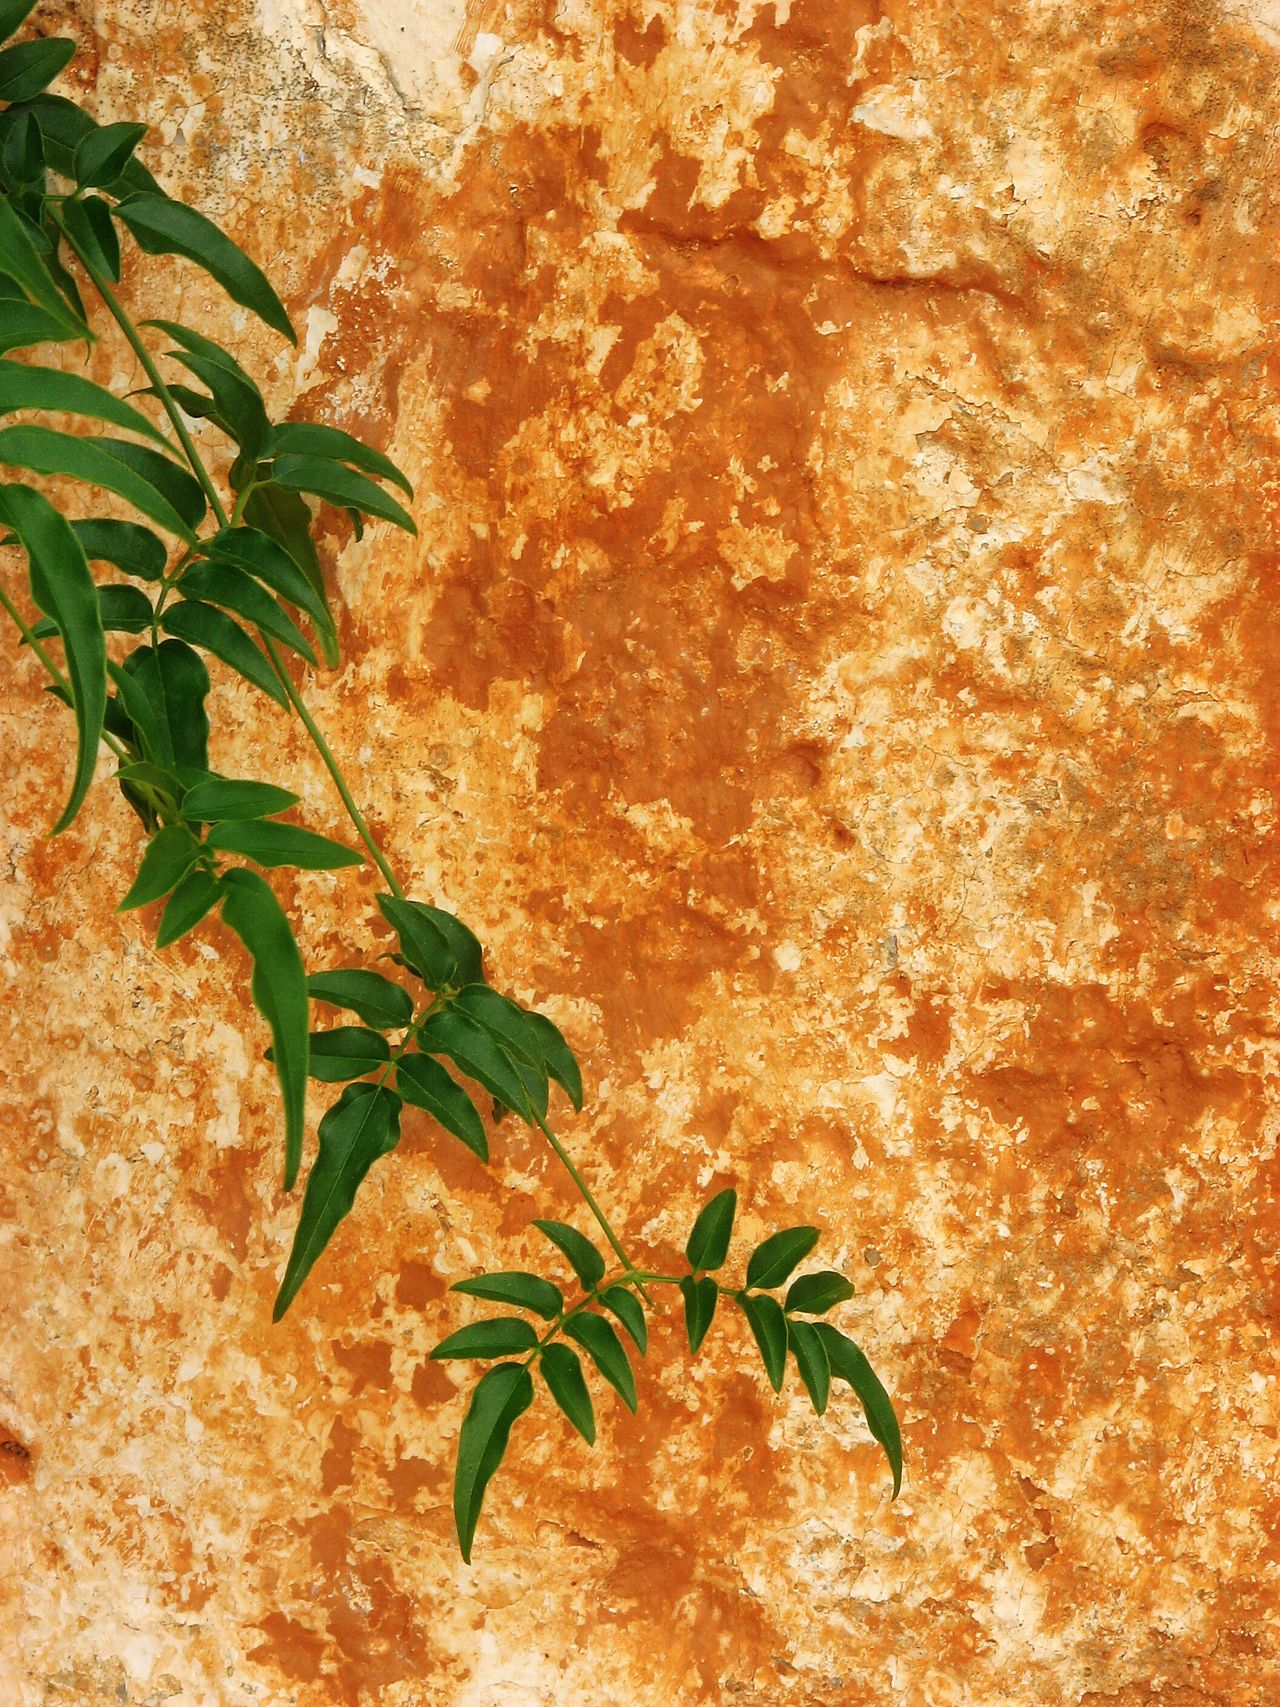 Ruin wall texture with foliage. Wabi-sabi Leaf Plant Growth Nature Green Color Flora No People Outdoors Beauty In Nature Day Branch Close-up Freshness Ruined Building Andalucia Rural Inspired By Beauty Awehaven's Andalucia